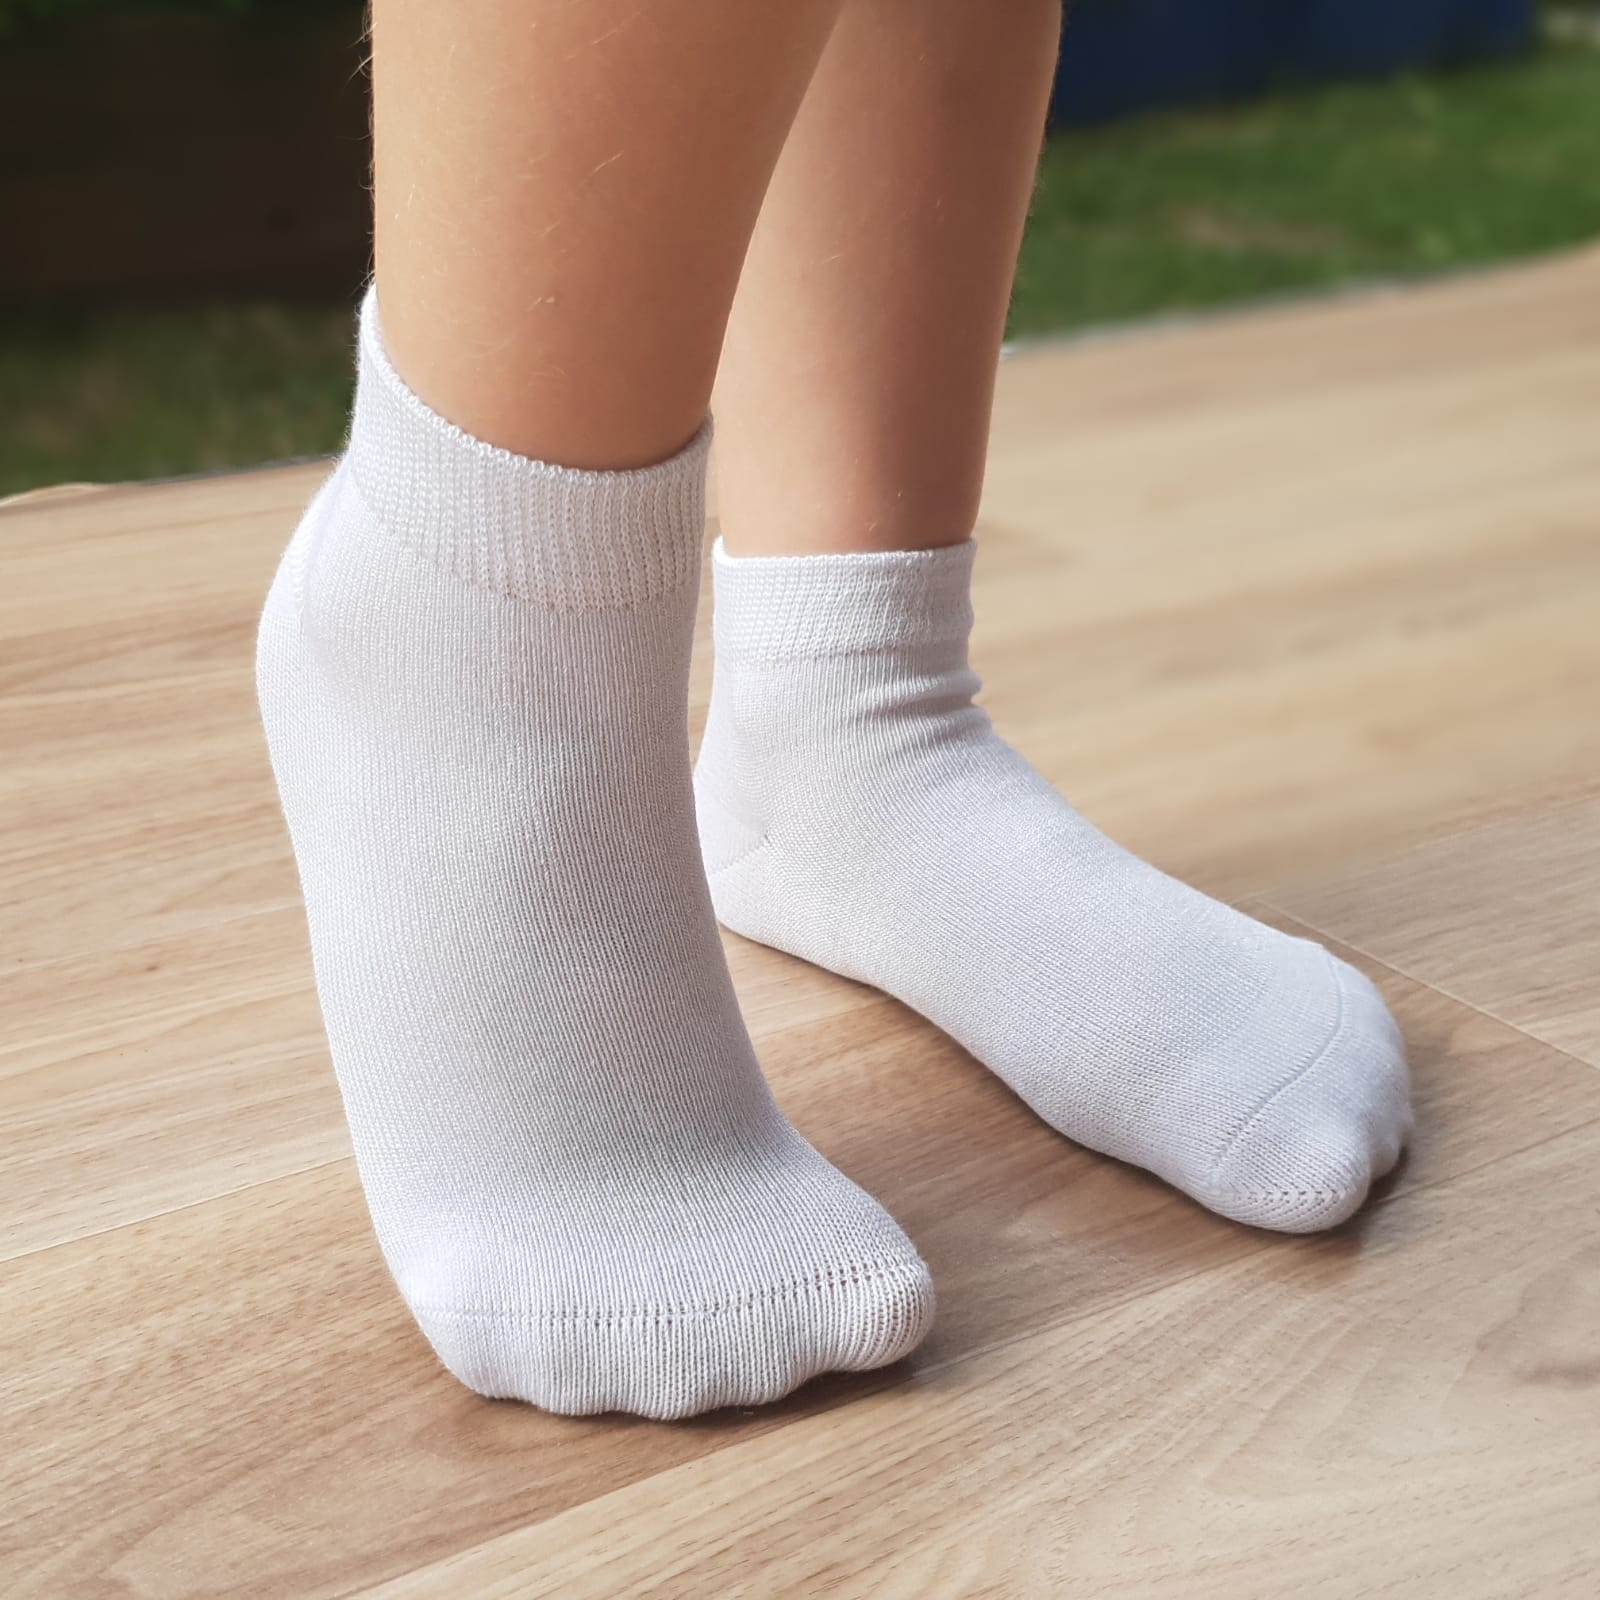 Calming Socks Ankle - 5 Pack